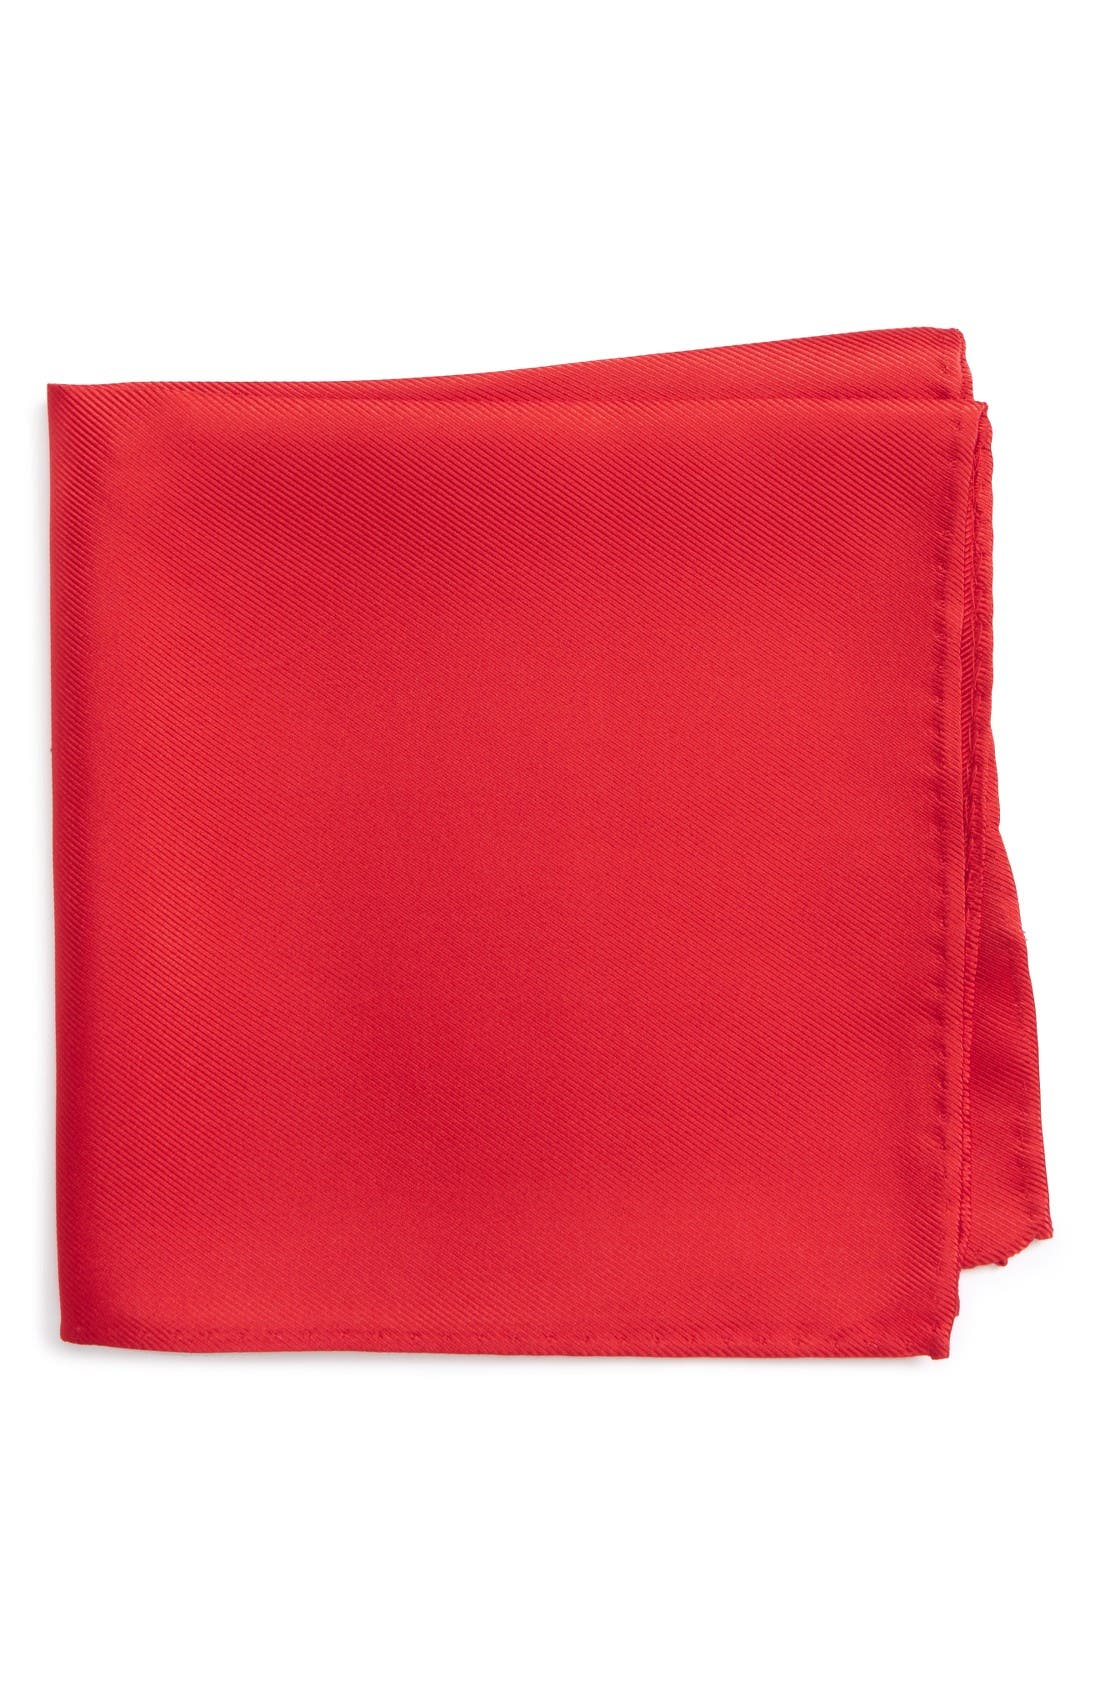 Solid Silk Pocket Square,                         Main,                         color, Red